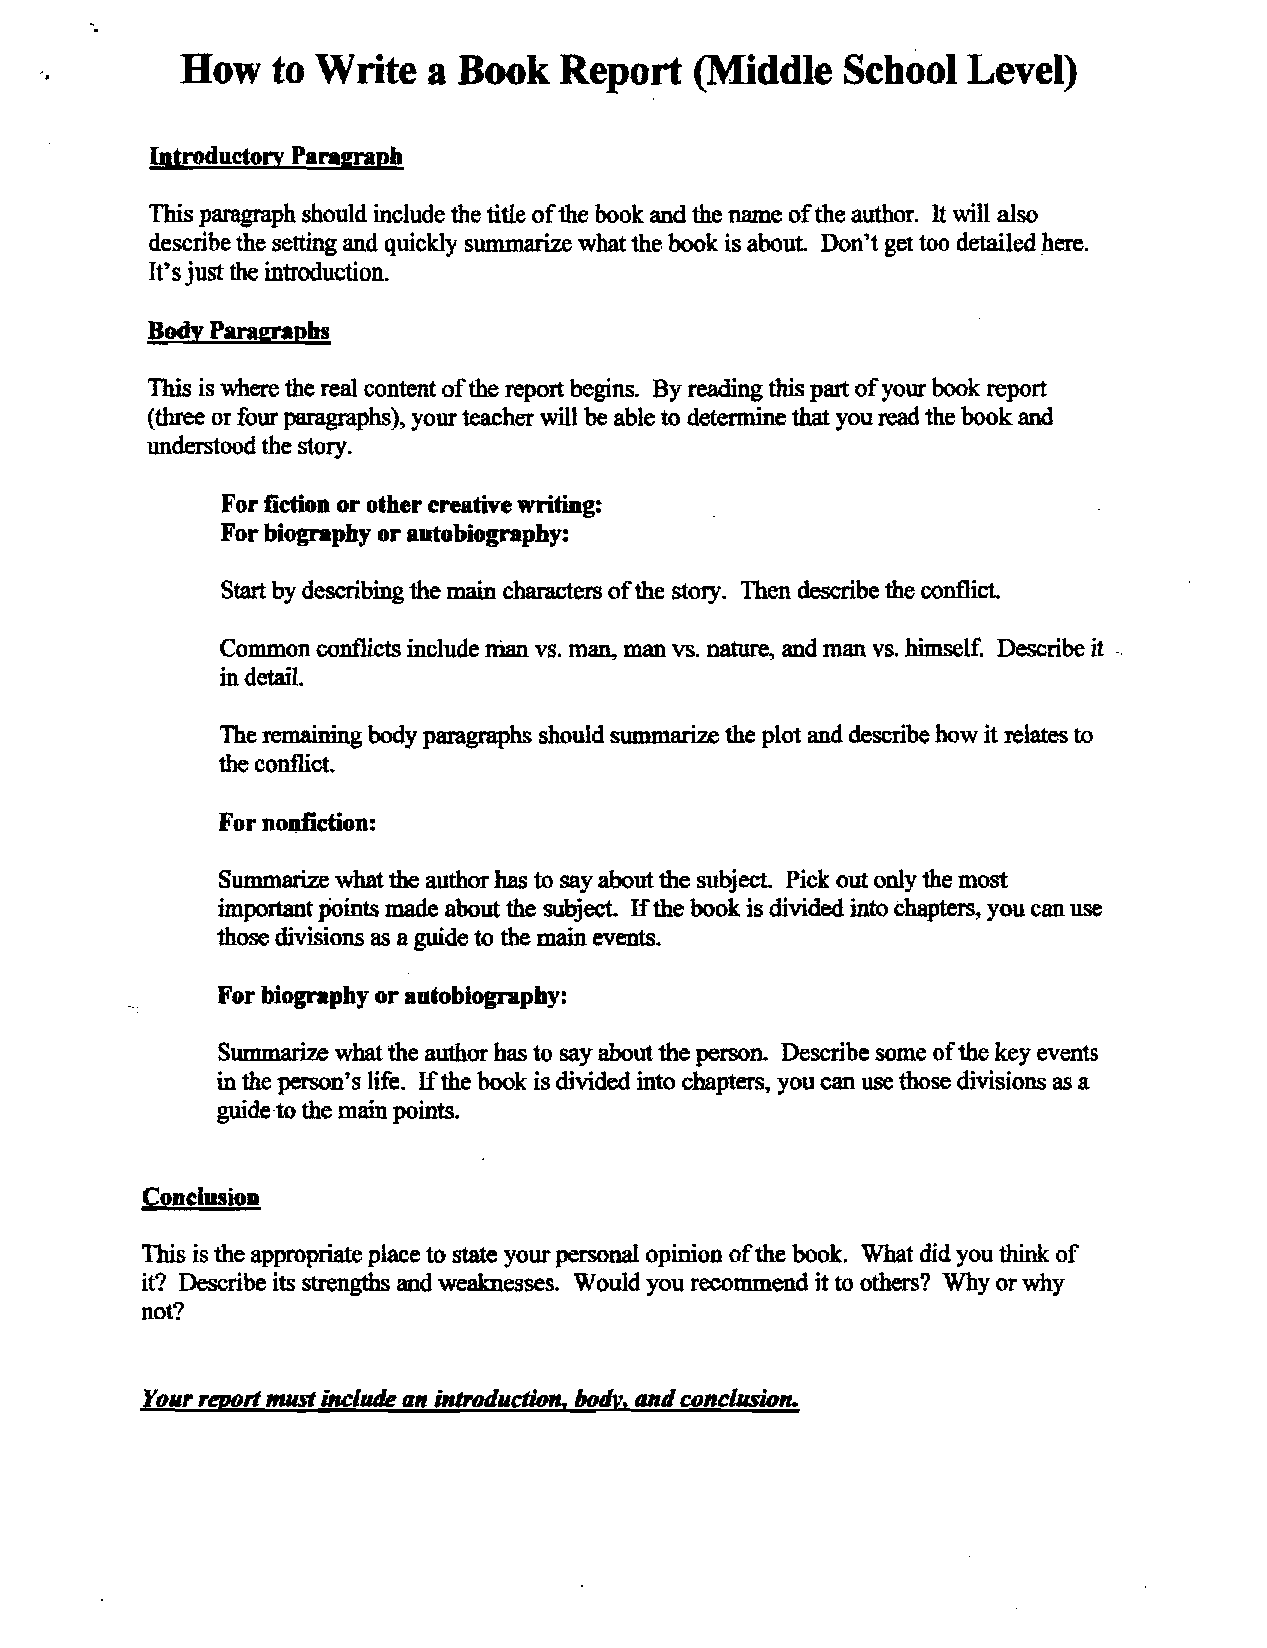 writing a book report middle school Book report for middle school - writing a custom research paper is go through a lot of stages experienced scholars engaged in the service will do your assignment within the deadline instead of wasting time in inefficient attempts, get qualified assistance here.